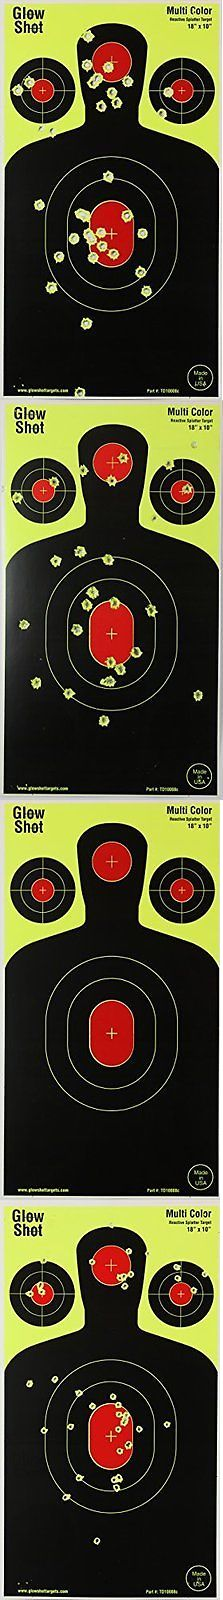 Other Airsoft Guns 31687: Silhouette Reactive Targets For Gun Rifle Airsoft And Bb Guns 100-Pack BUY IT NOW ONLY: $48.95